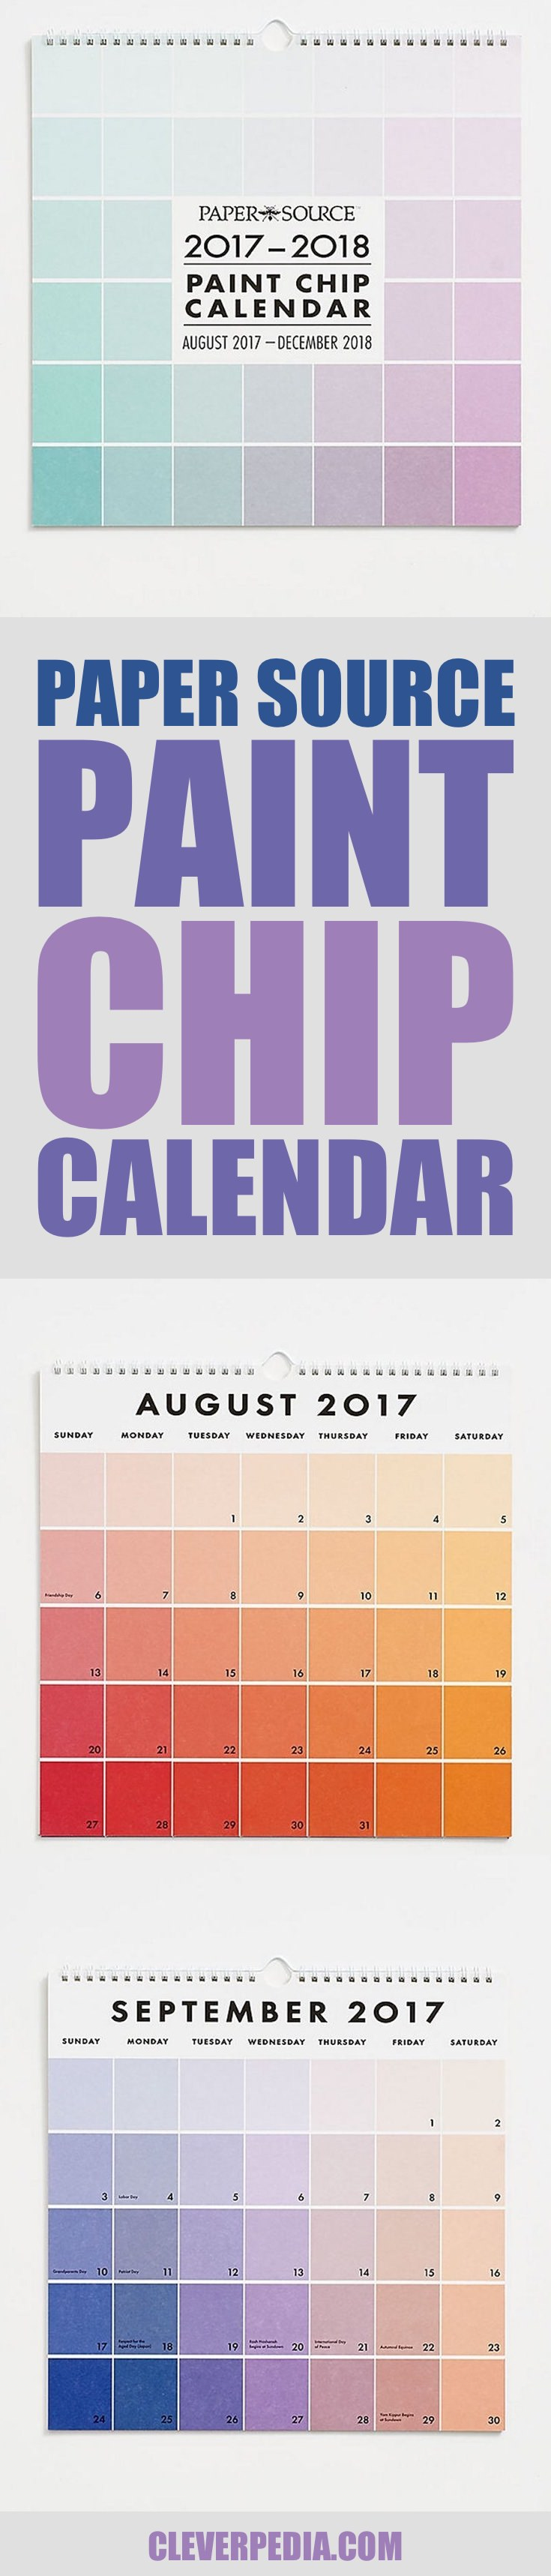 The Paper Source 2018 Paint Chip Wall Calendar features a gradient of paint chips spread across the appointment squares. This is a colorful calendar for creatives!